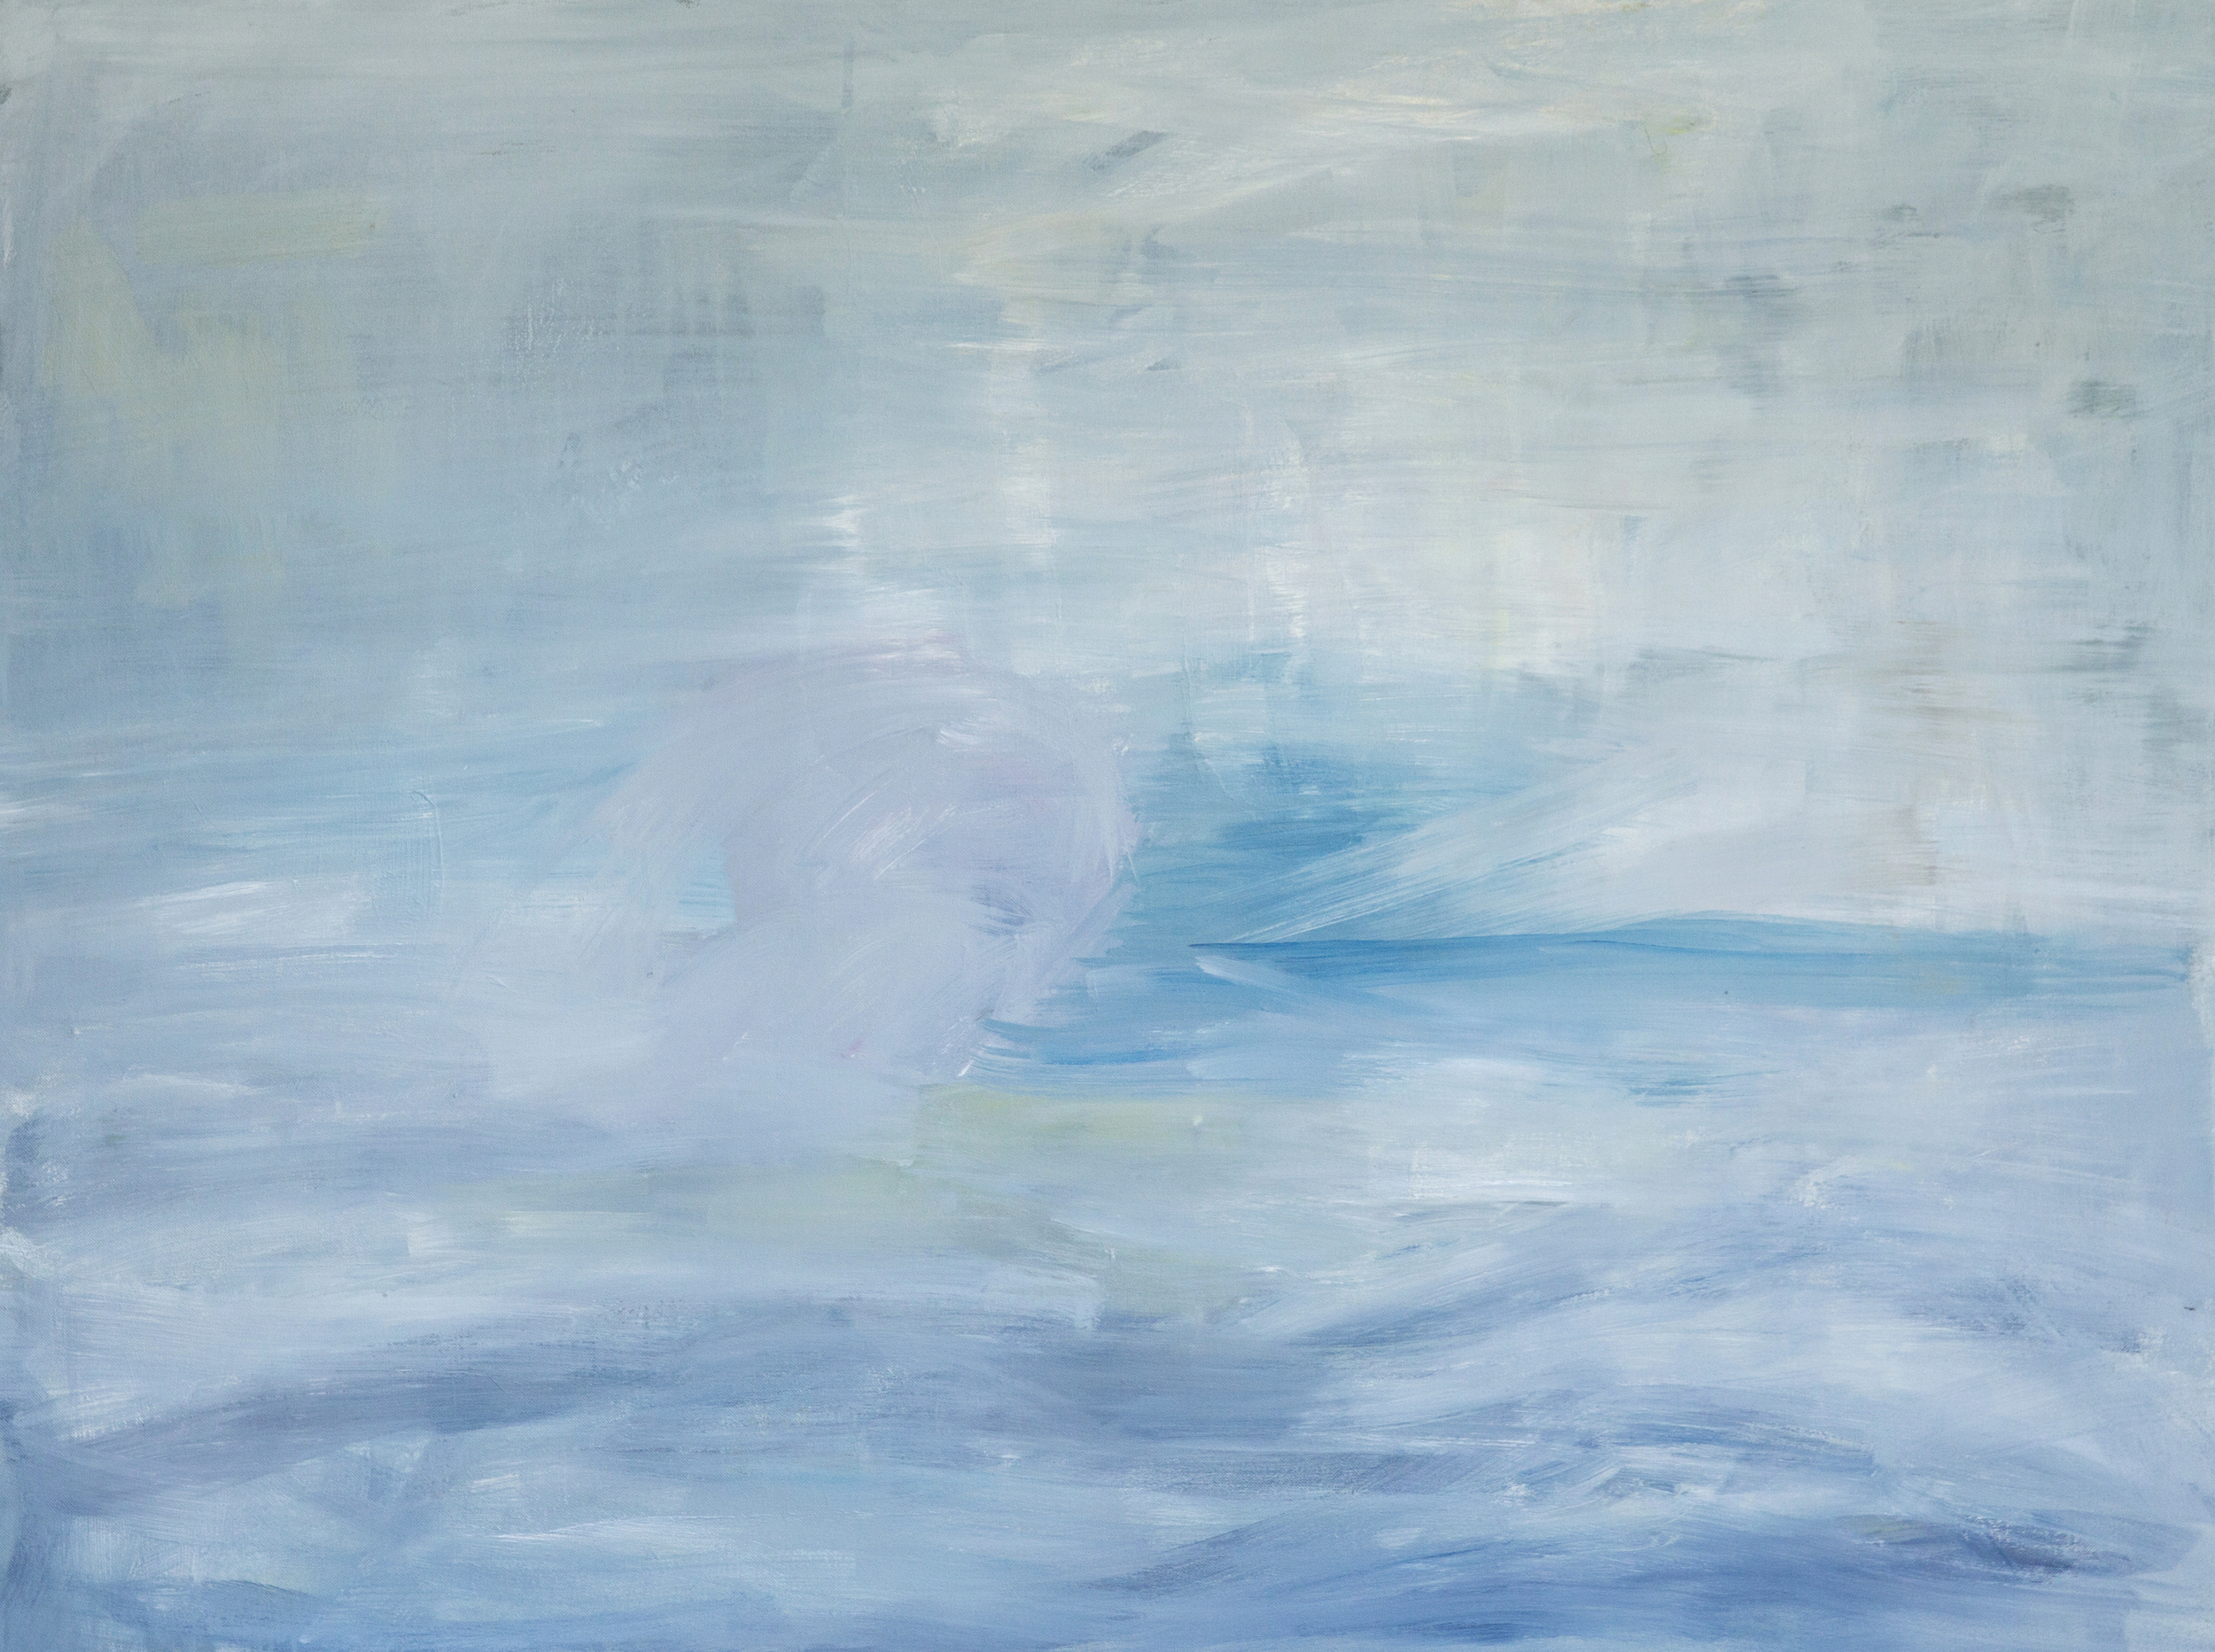 Blue  36 x 48 inches  acrylic on canvas